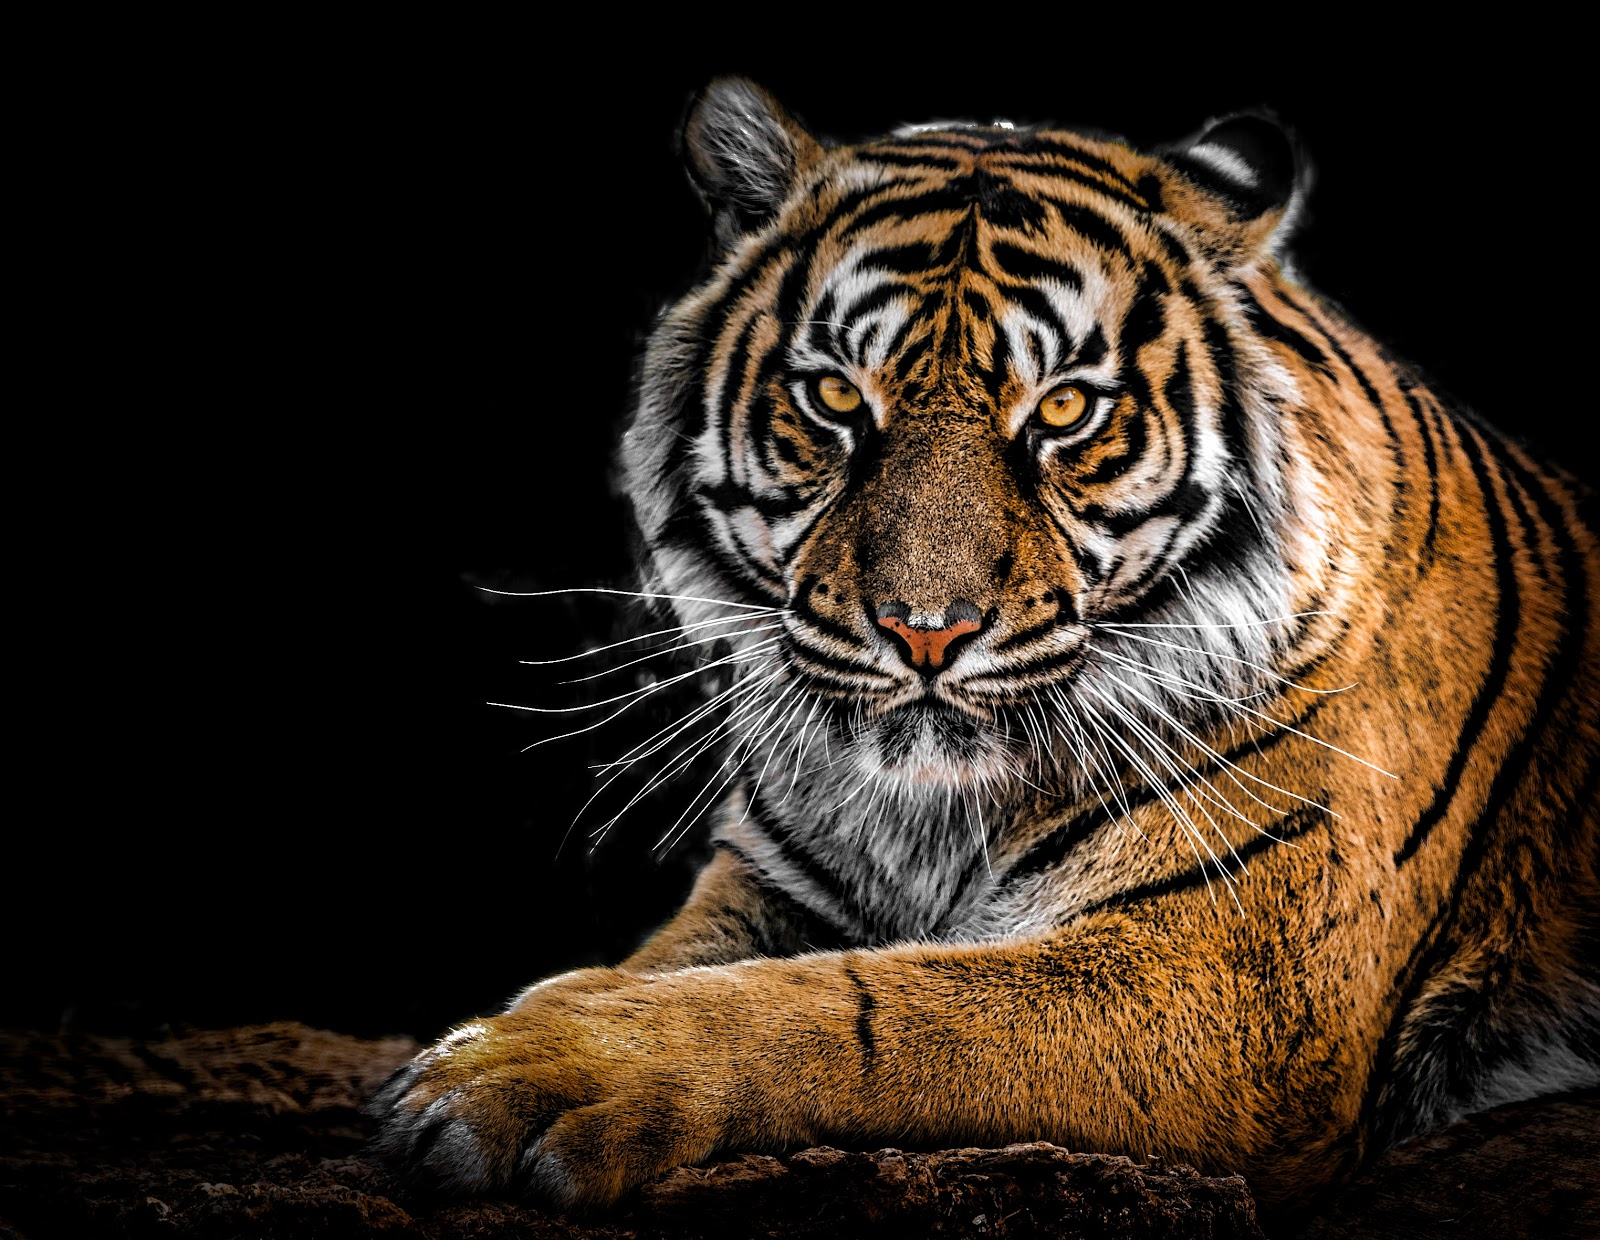 close-up-photography-of-tiger-pictures